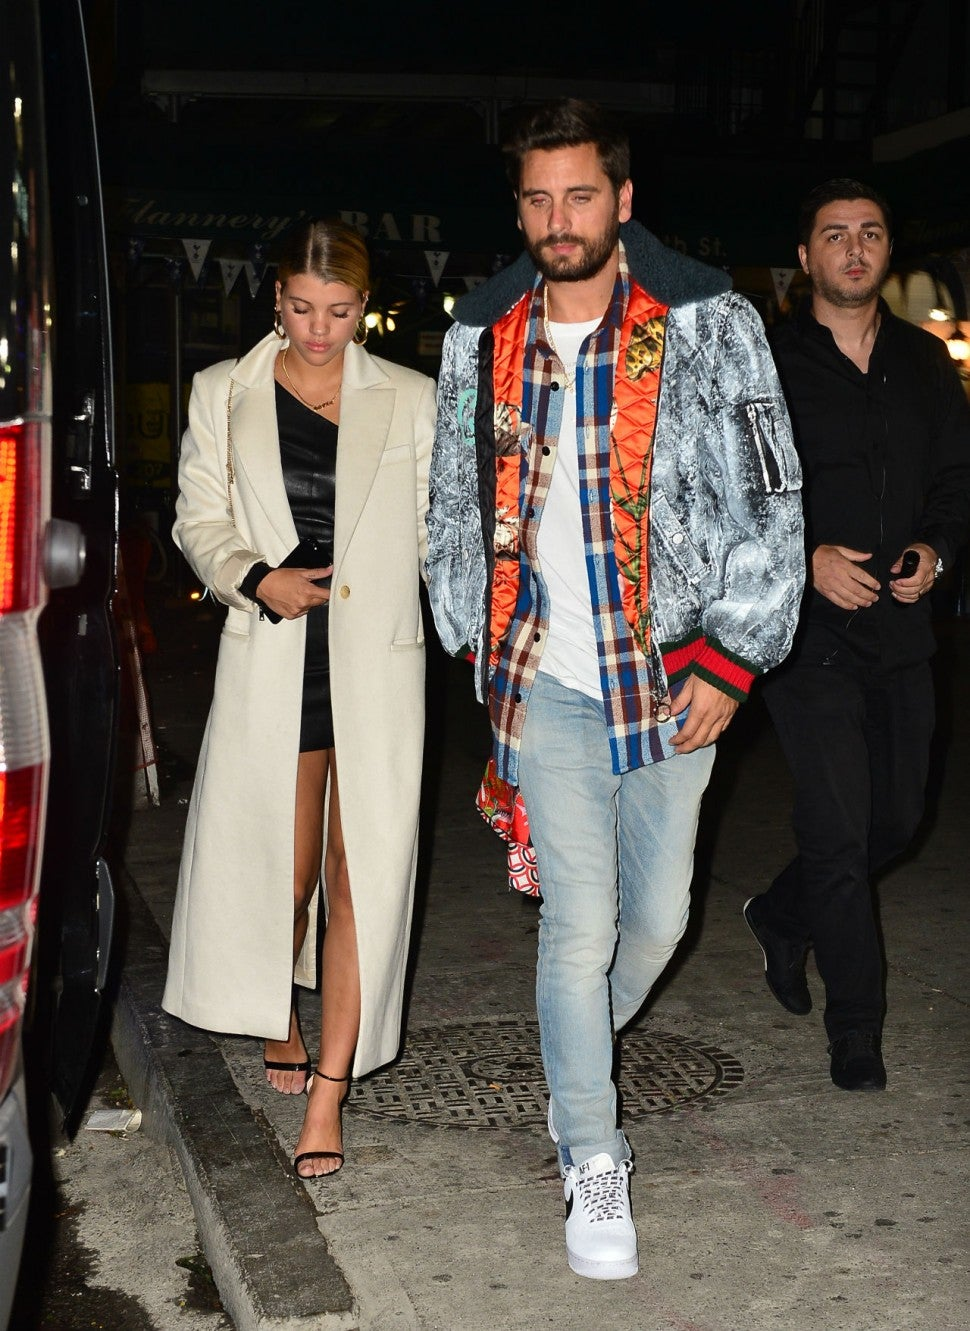 Sofia Richie and Scott Disick in 2017